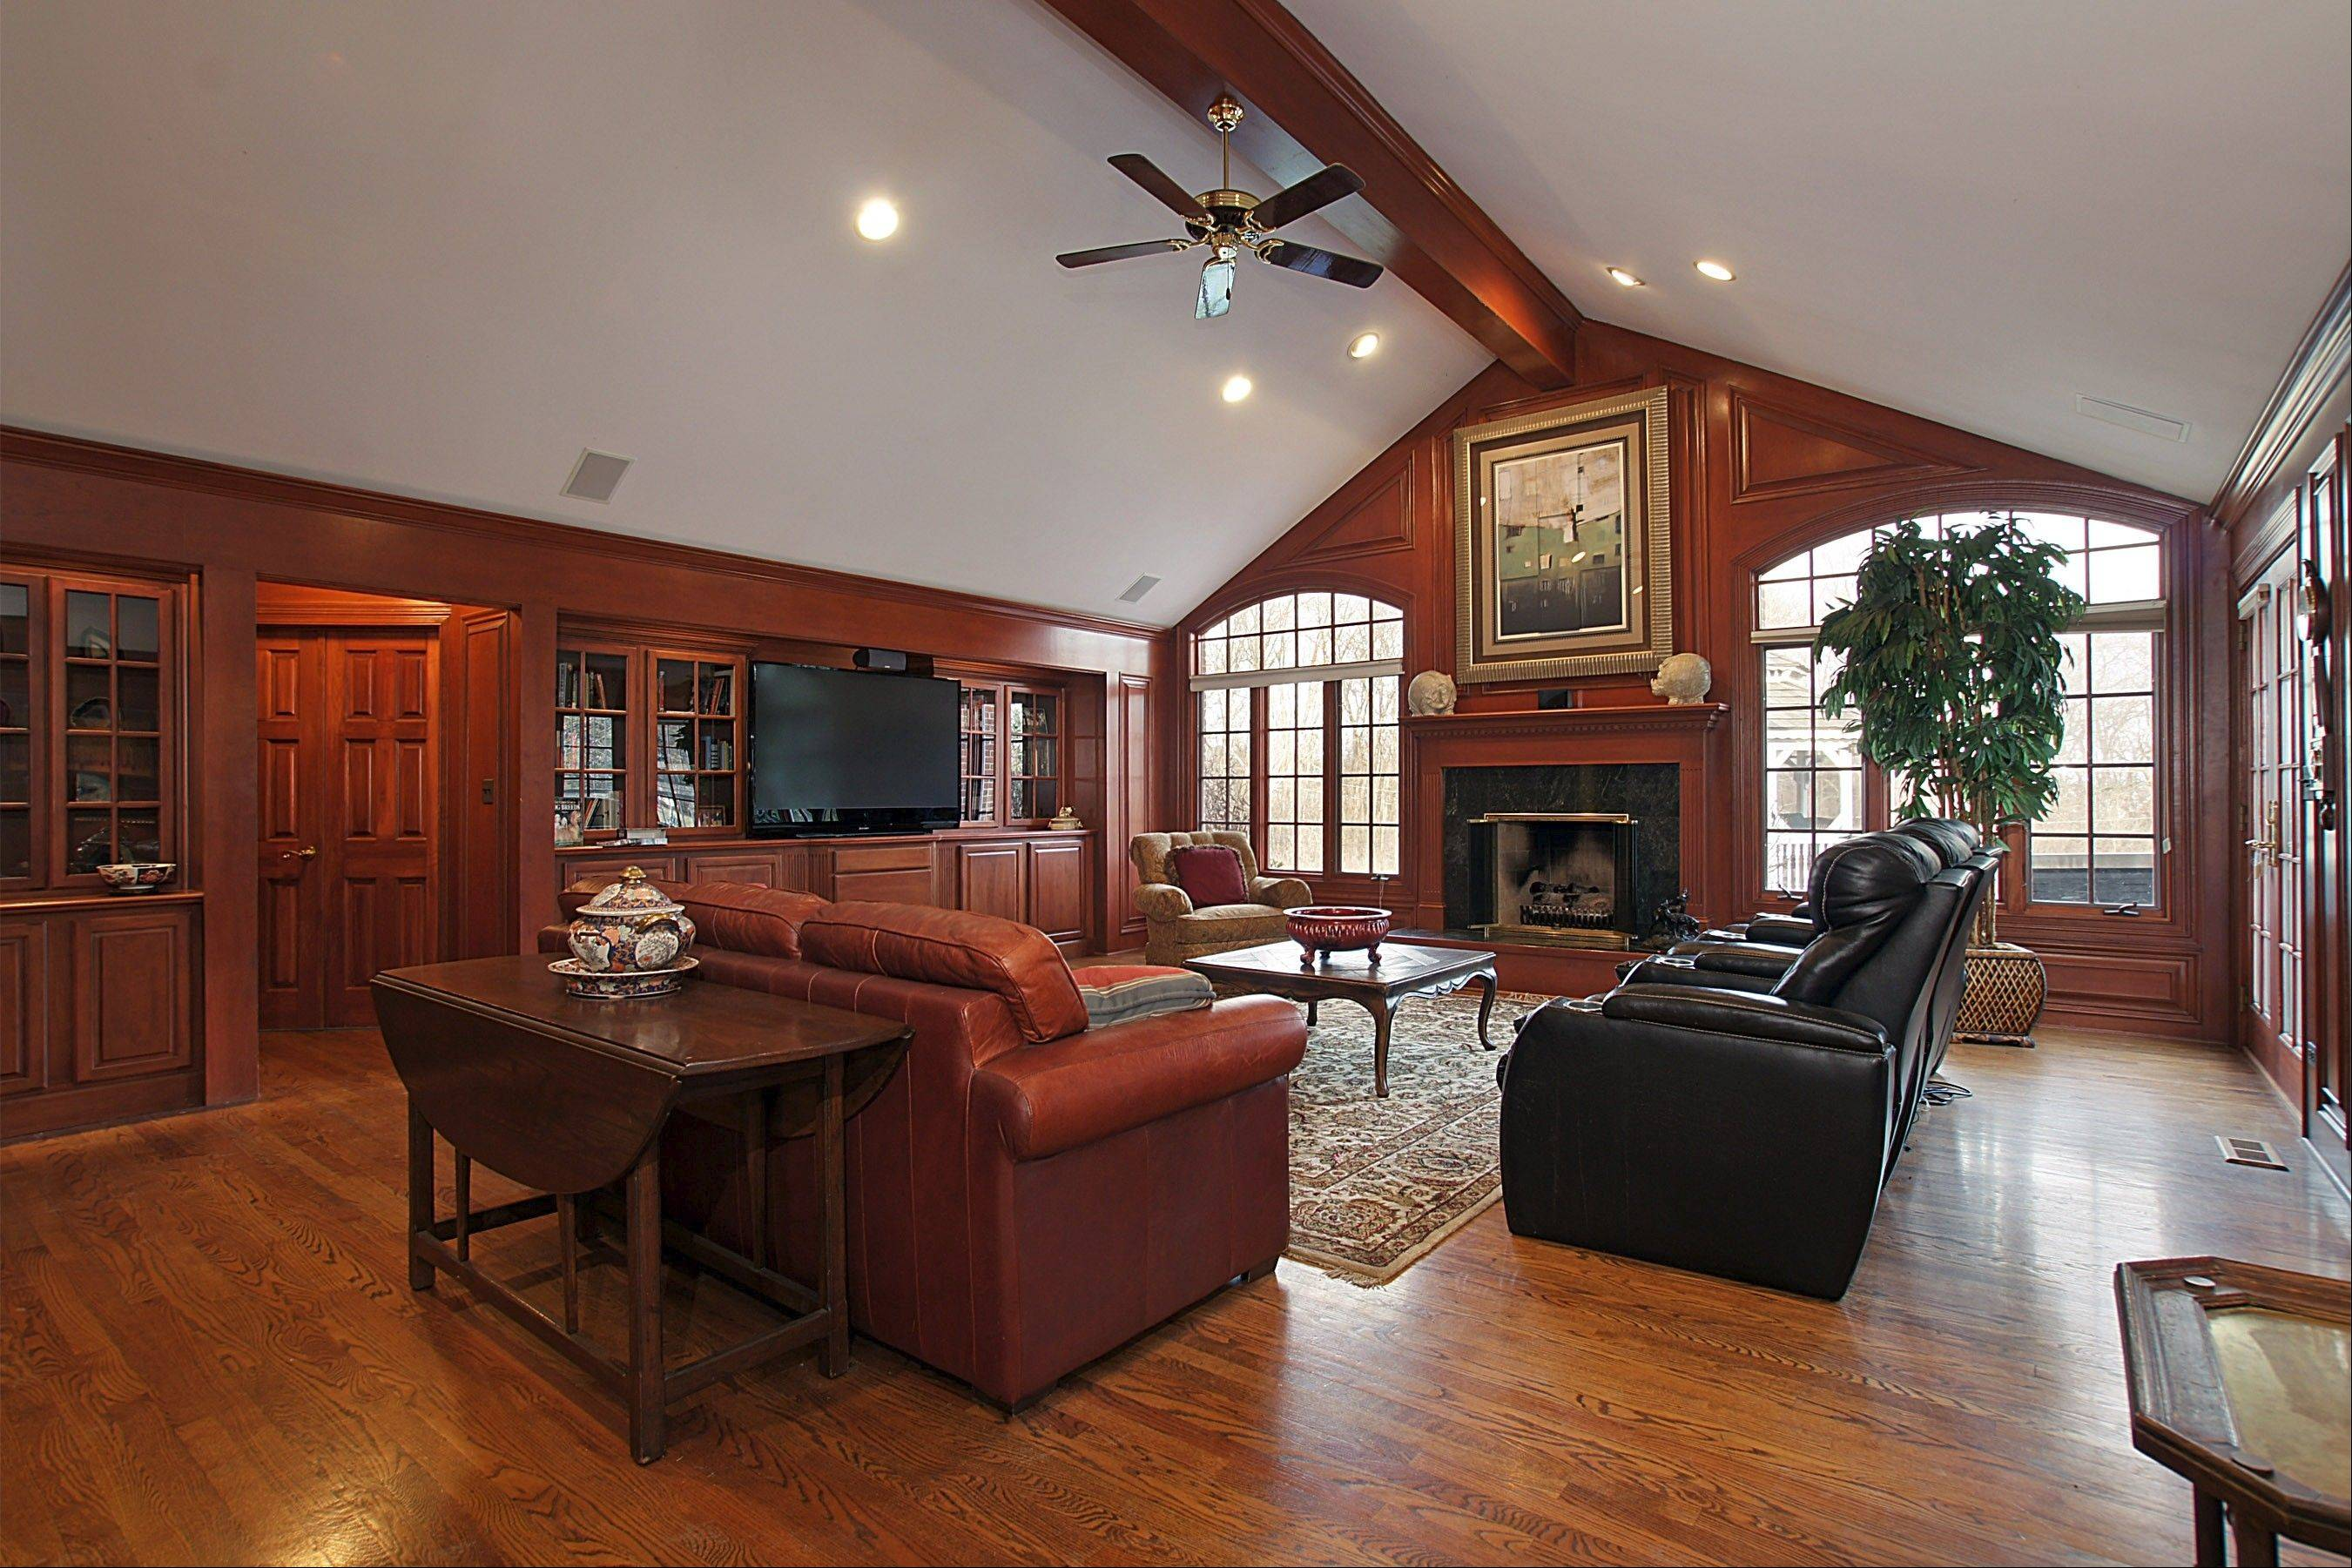 Custom cherry woodwork in the great room leaves a lasting impression.